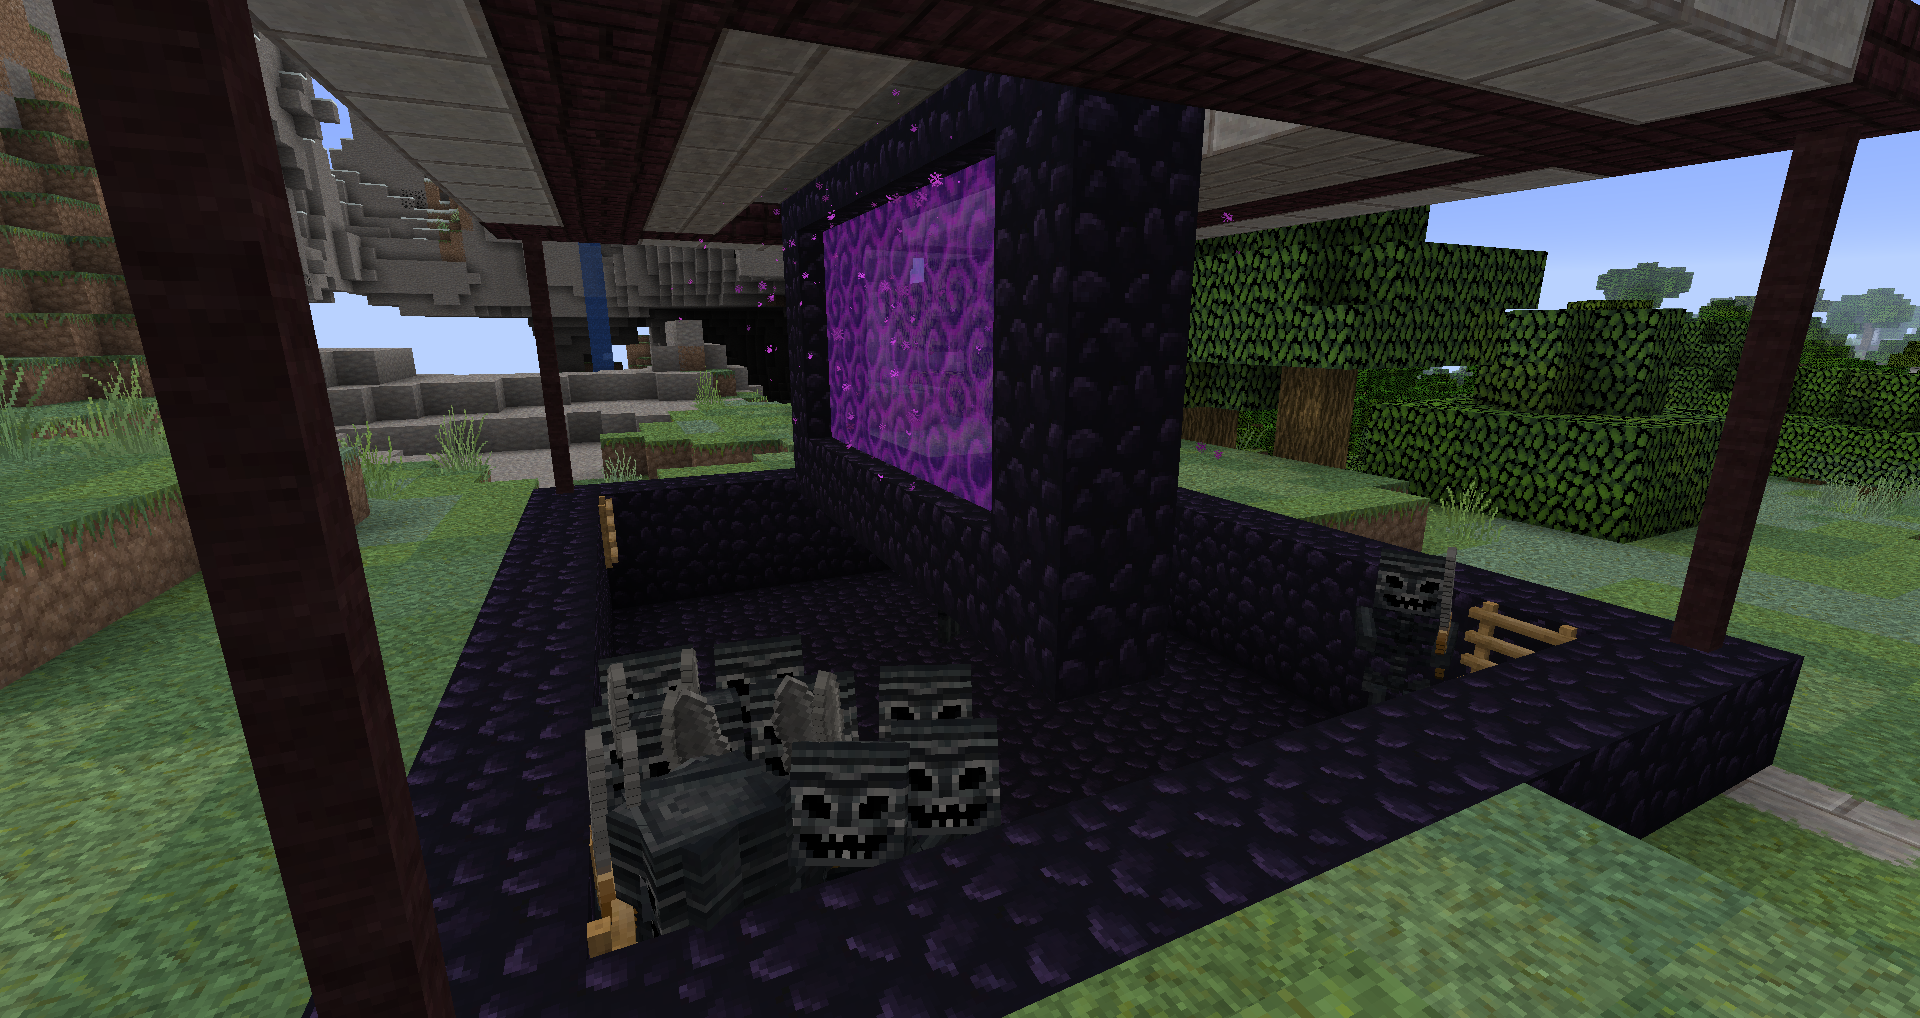 1 13 2] Charged Creeper Blowing Up Wither Skeletons